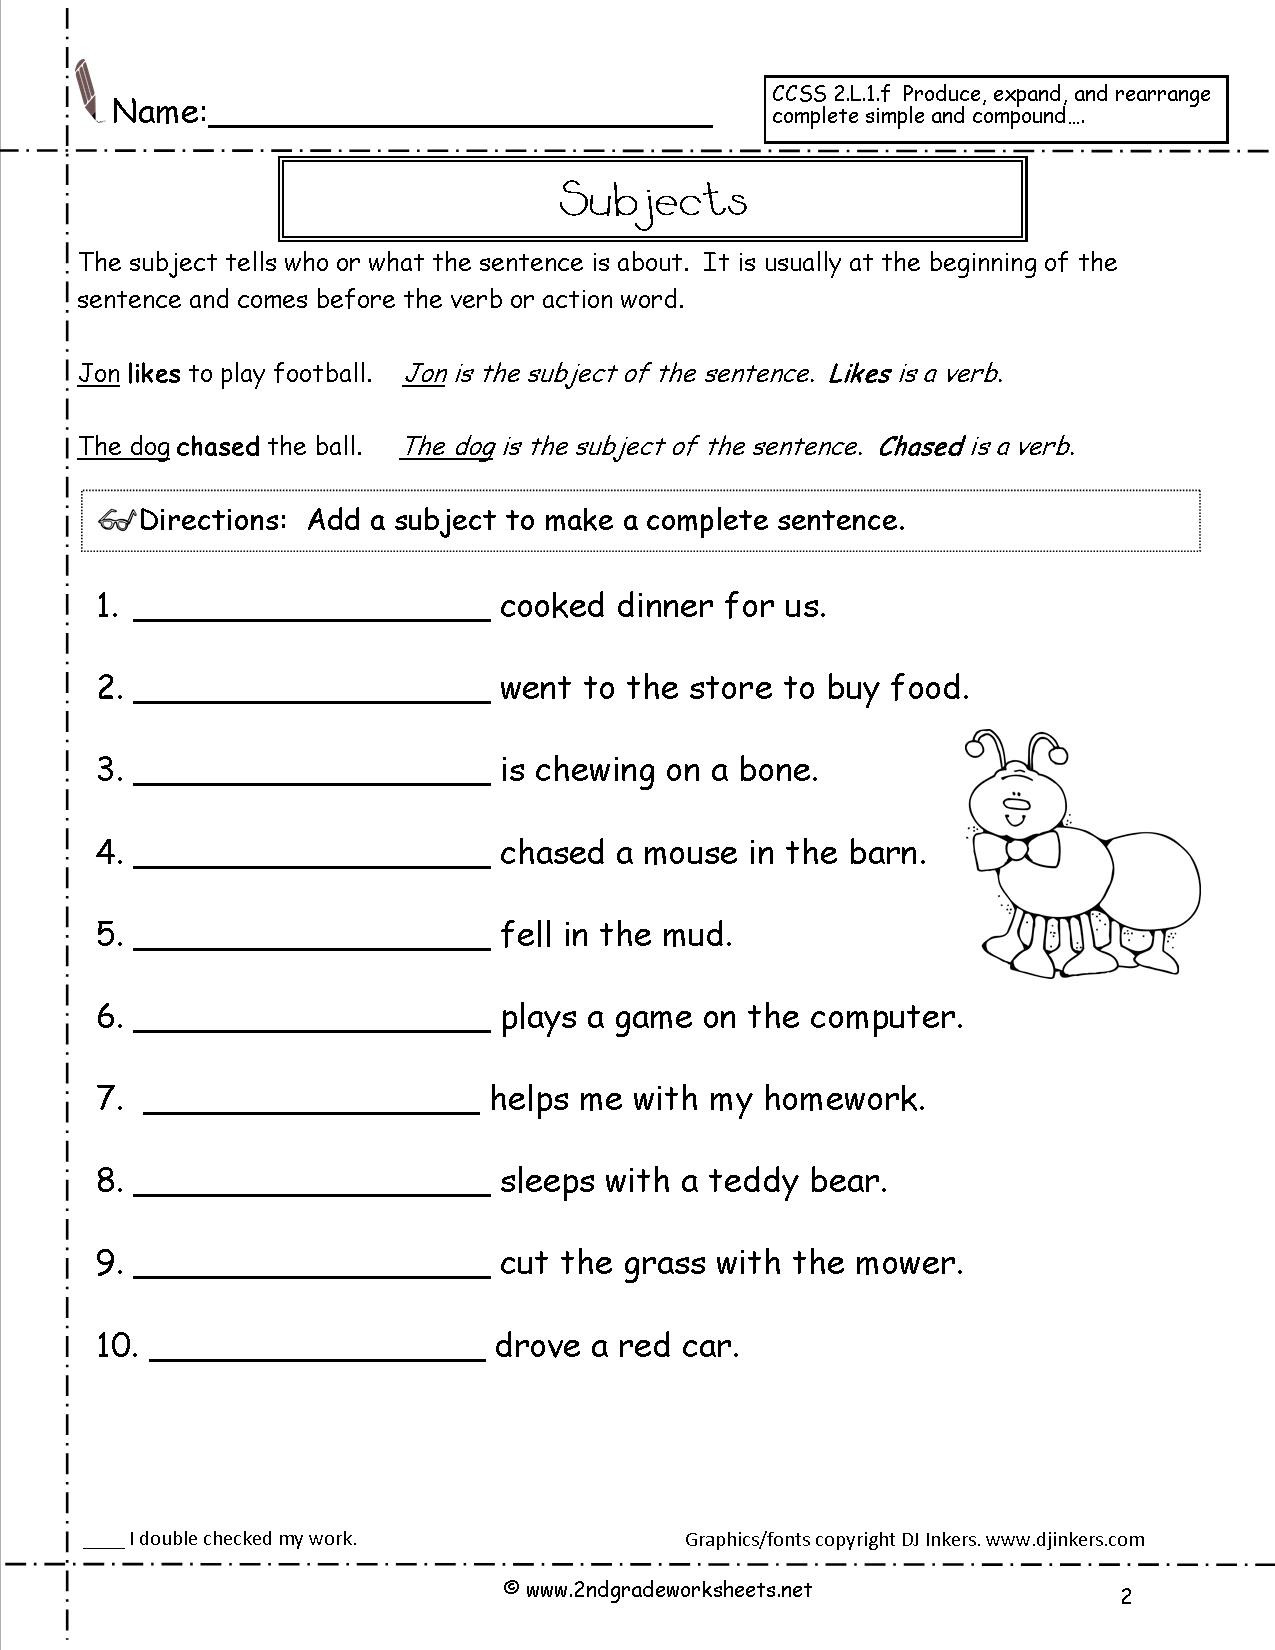 Complete Sentence Worksheets 3rd Grade Basic Math Words Printable Cursive Worksheets 3rd Grade